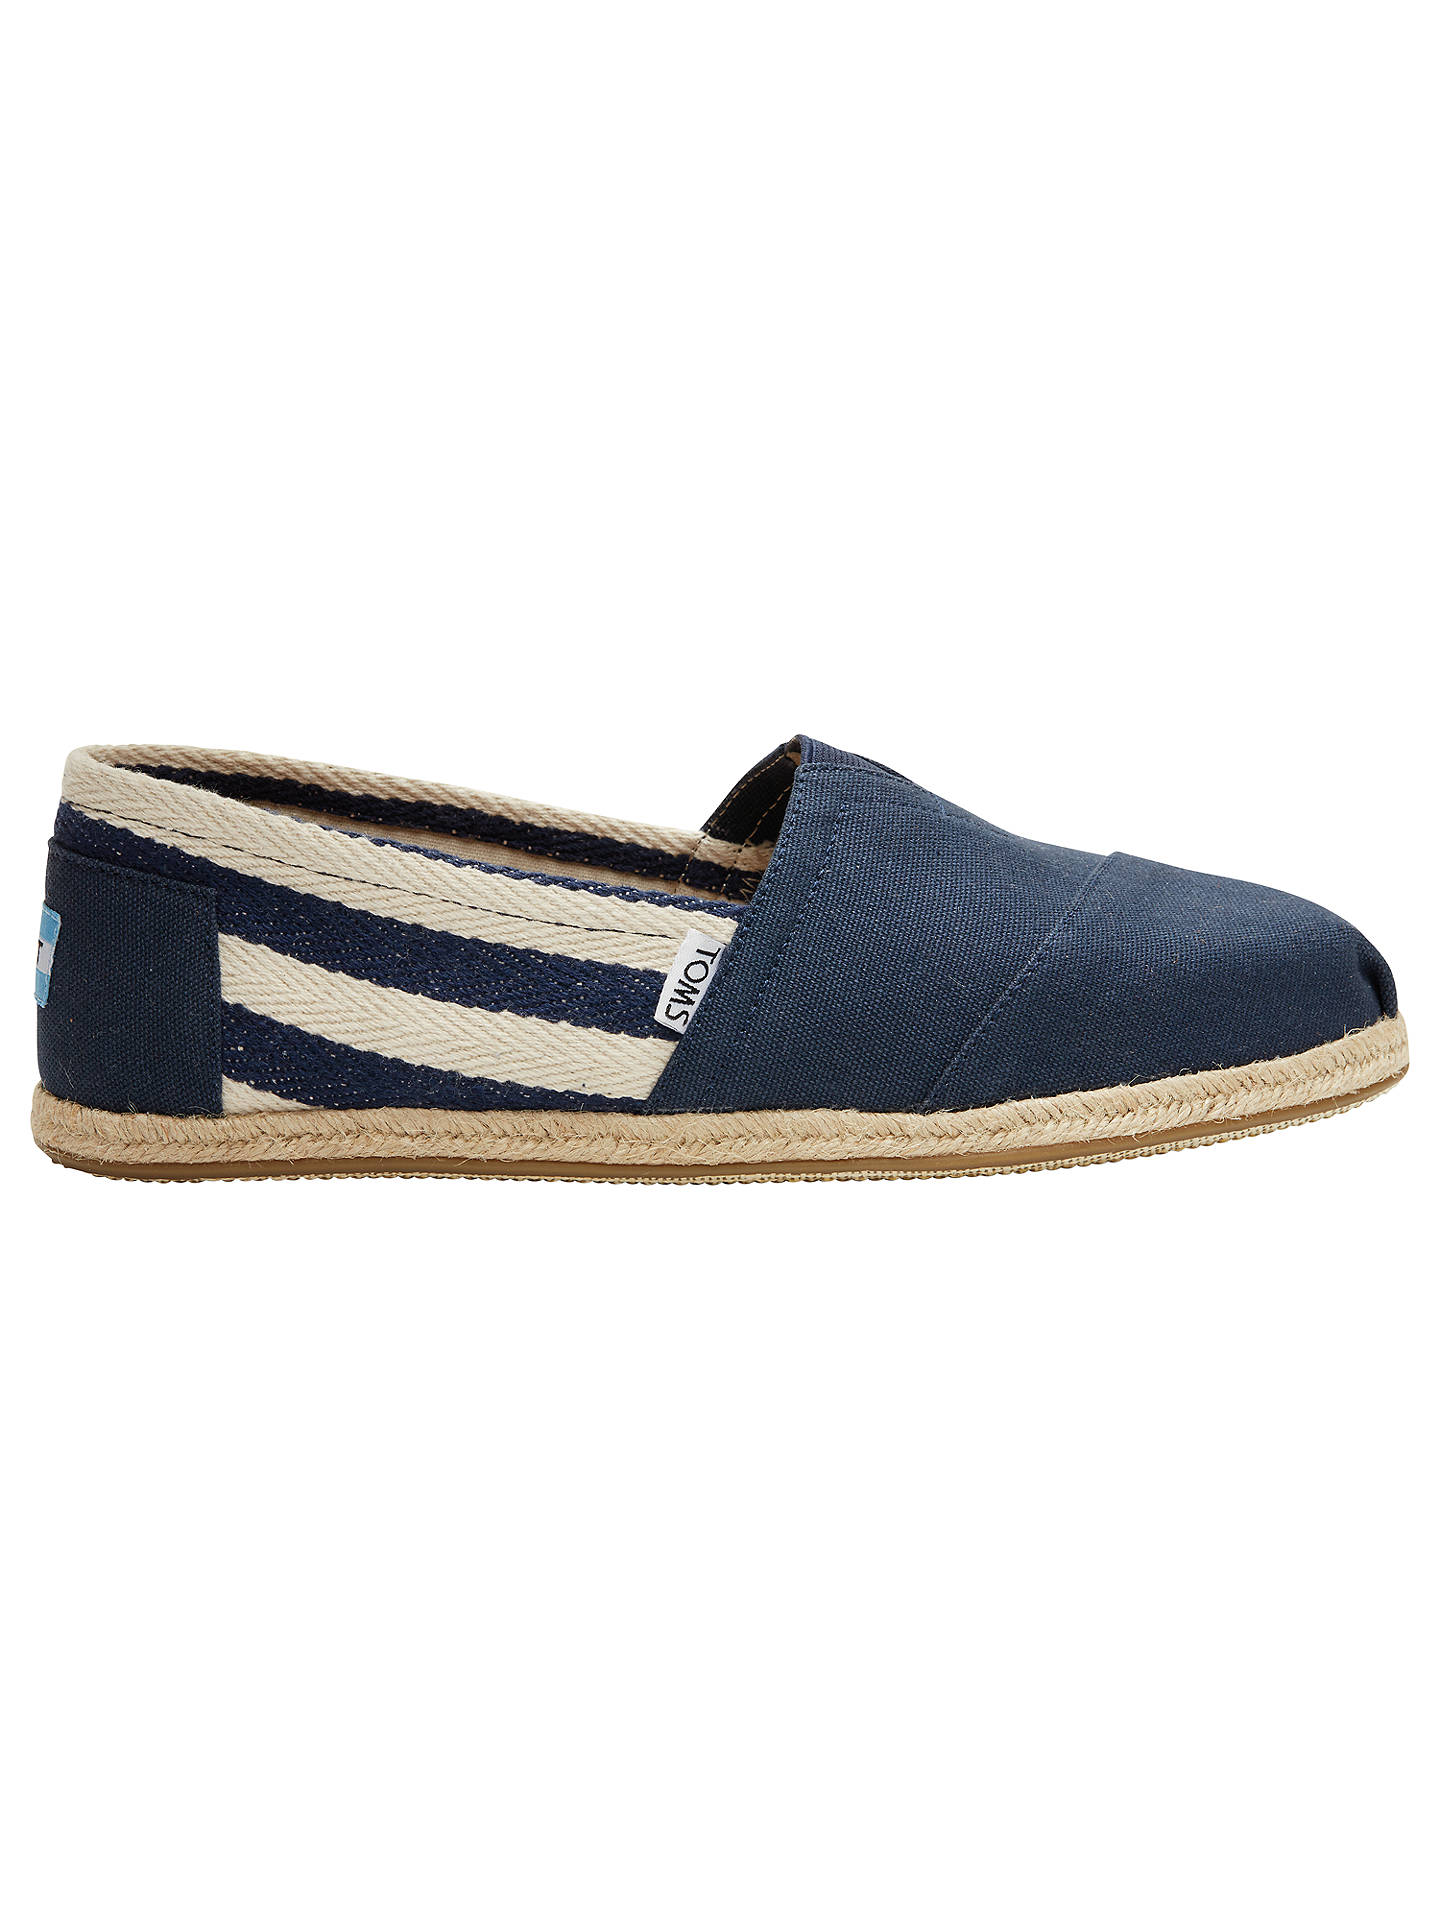 32660da807e Buy TOMS Classic Rope Sole University Espadrilles, Navy, 7 Online at  johnlewis.com ...